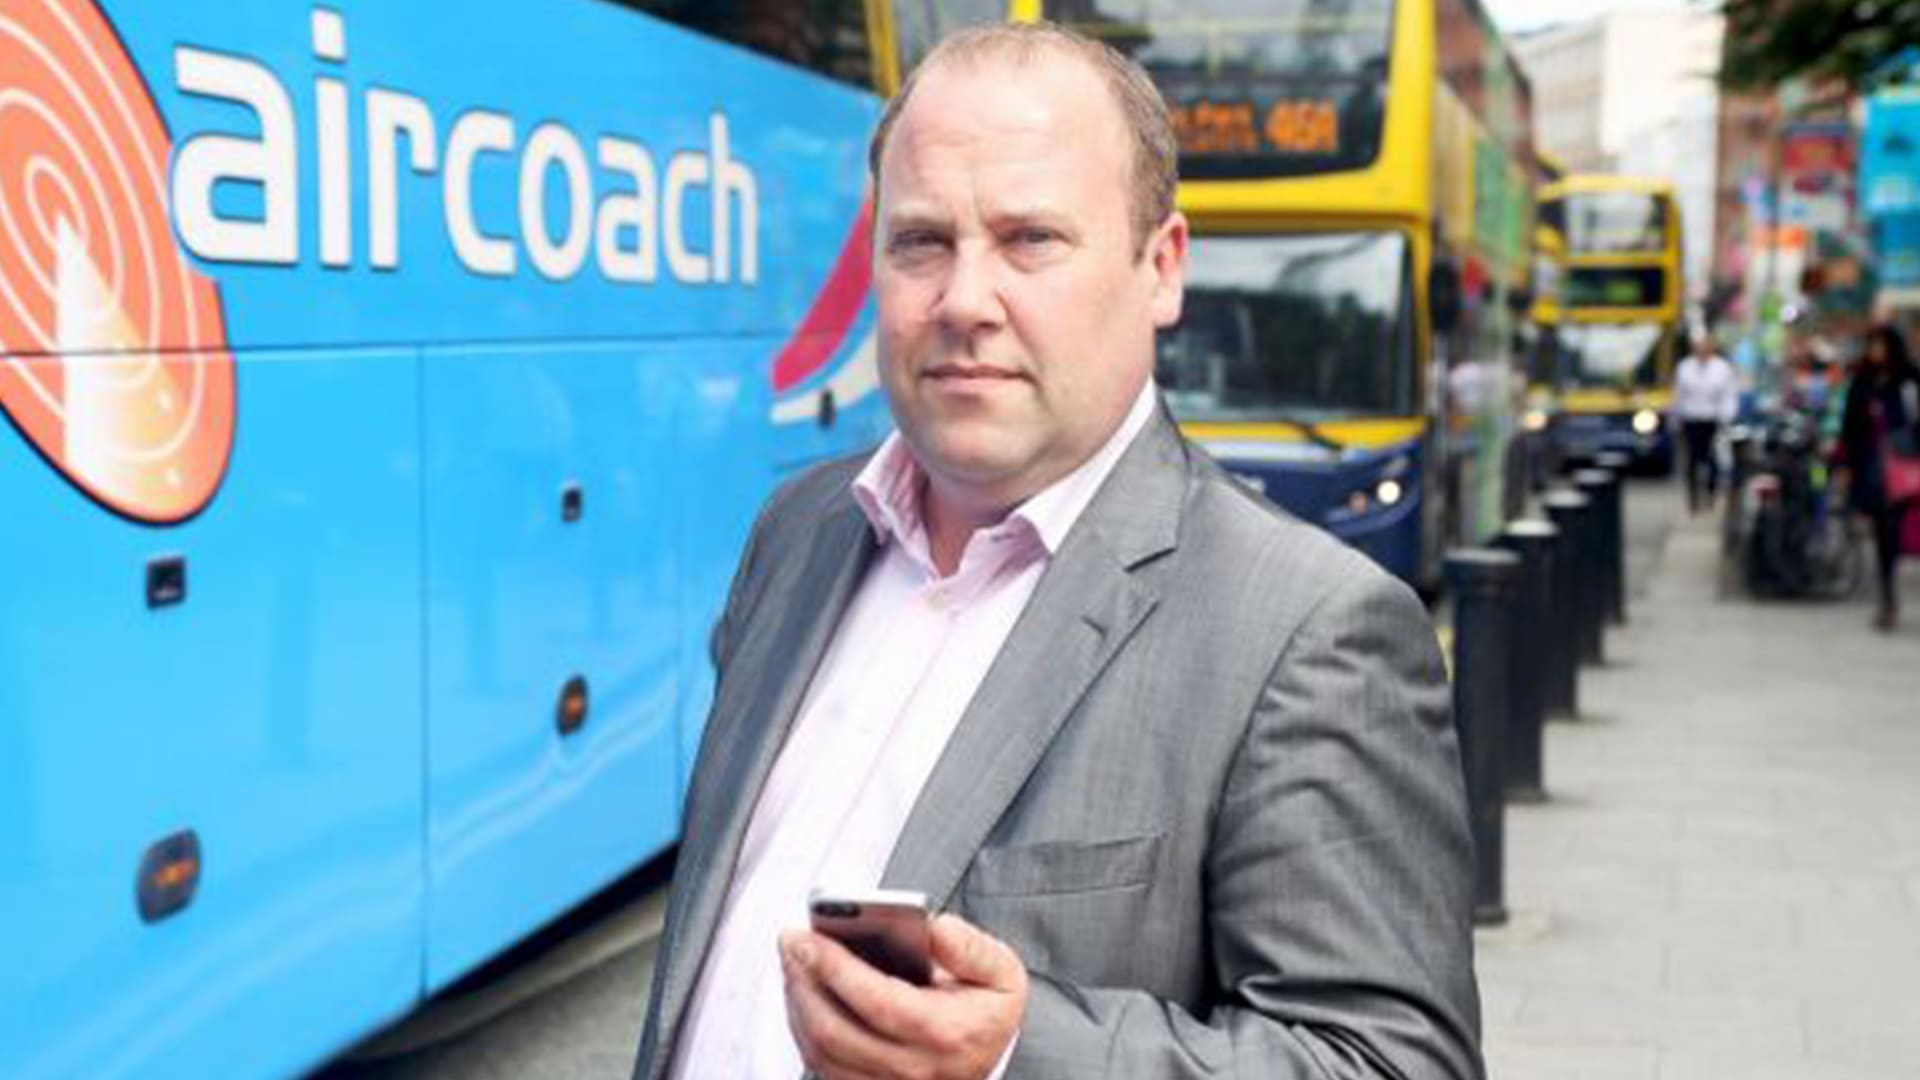 Rural Wifi CEO Patrick Cotter featured in the Irish Times 4